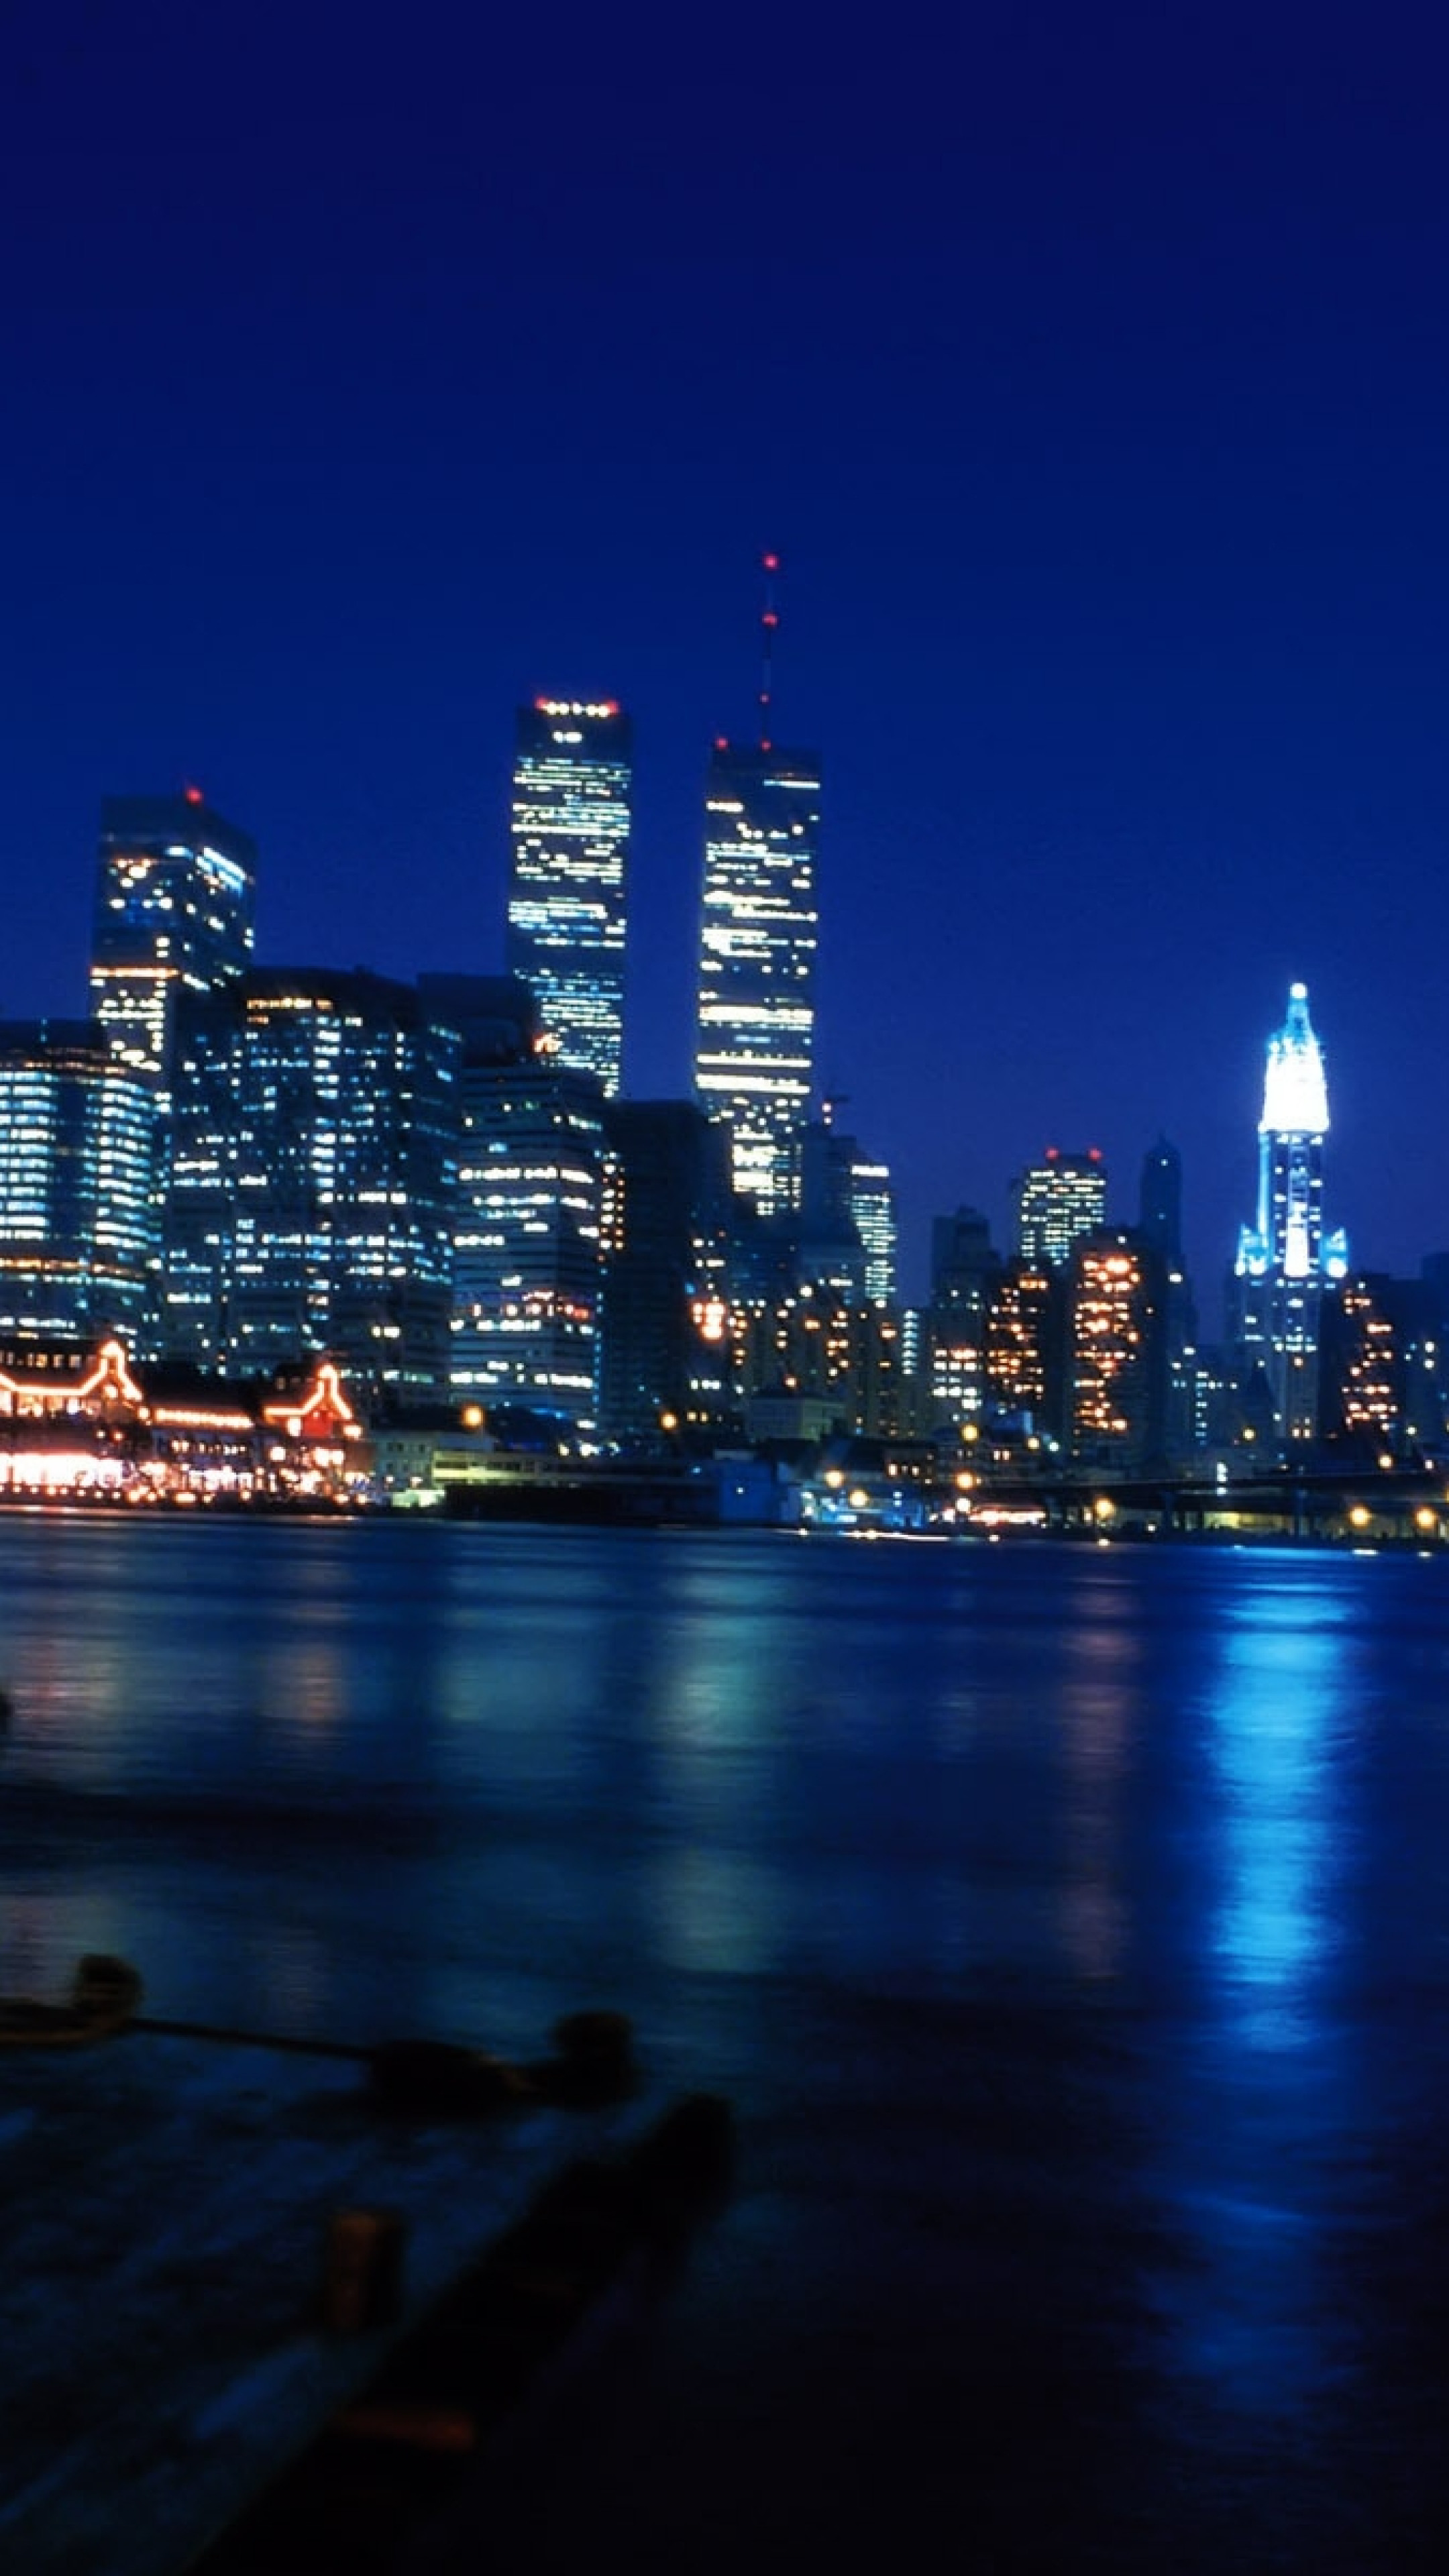 New york twin towers wallpaper 60 images - 2160x3840 wallpaper ...